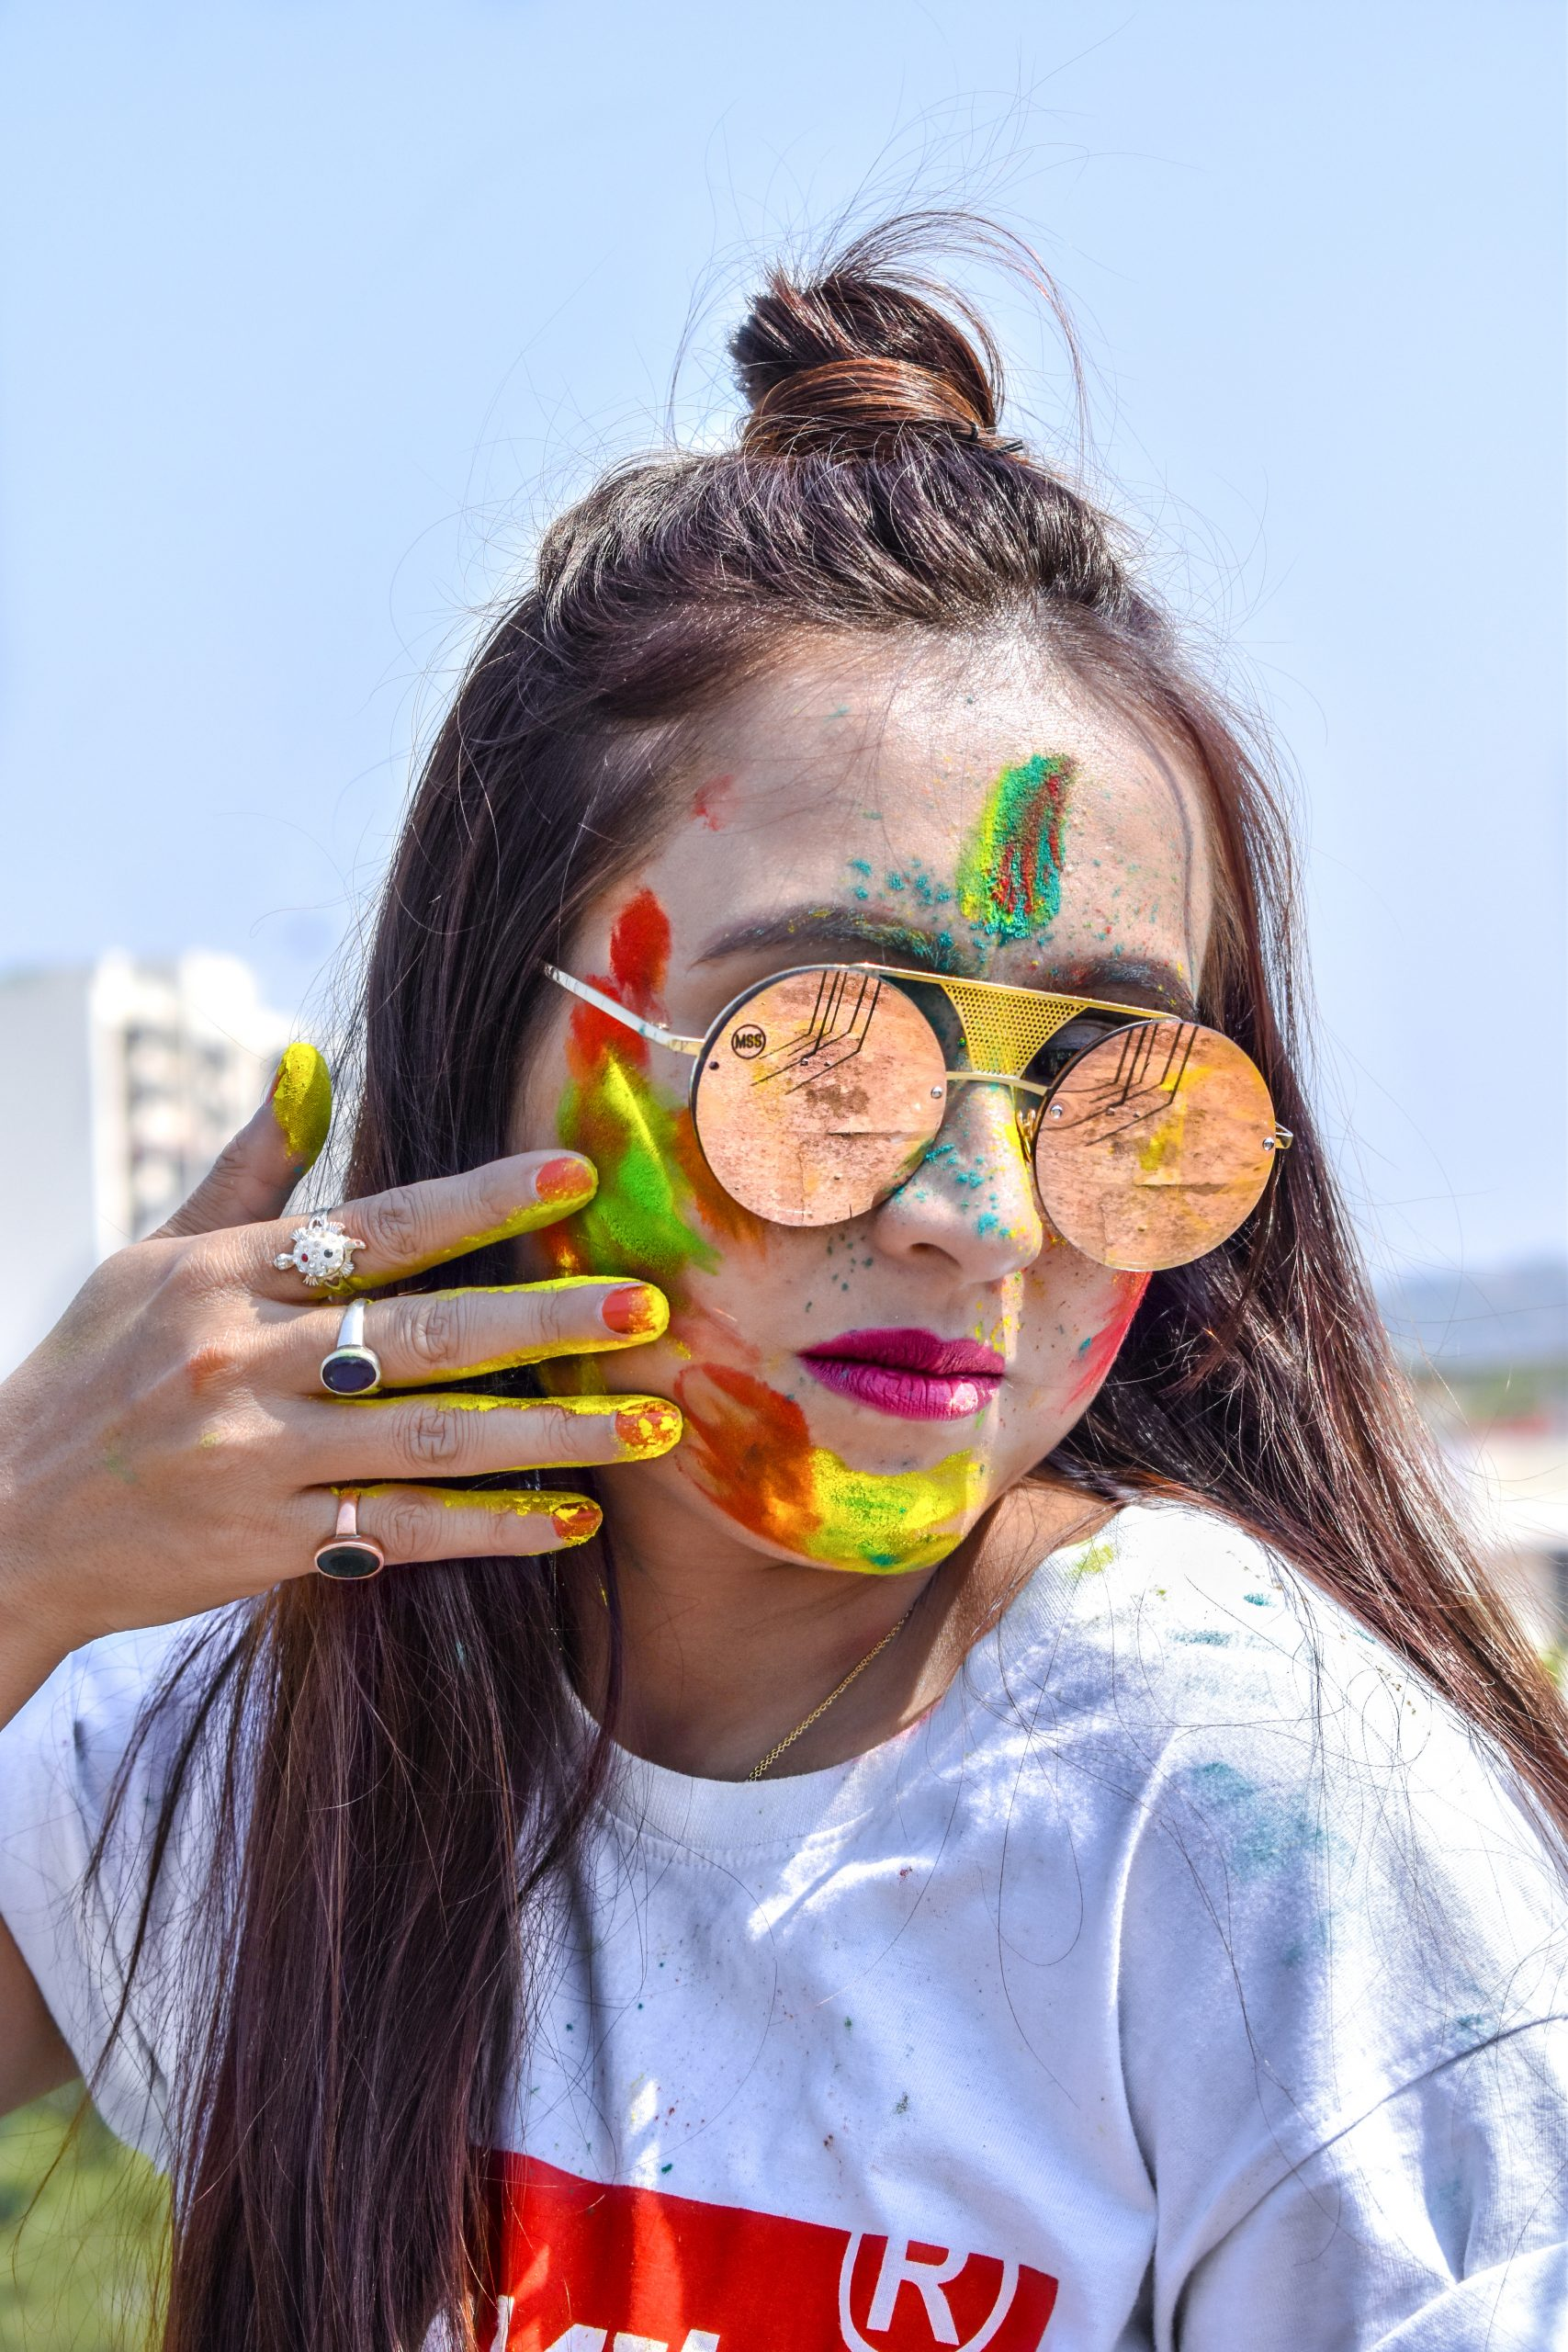 Girl with long hair ready for celebrating Holi